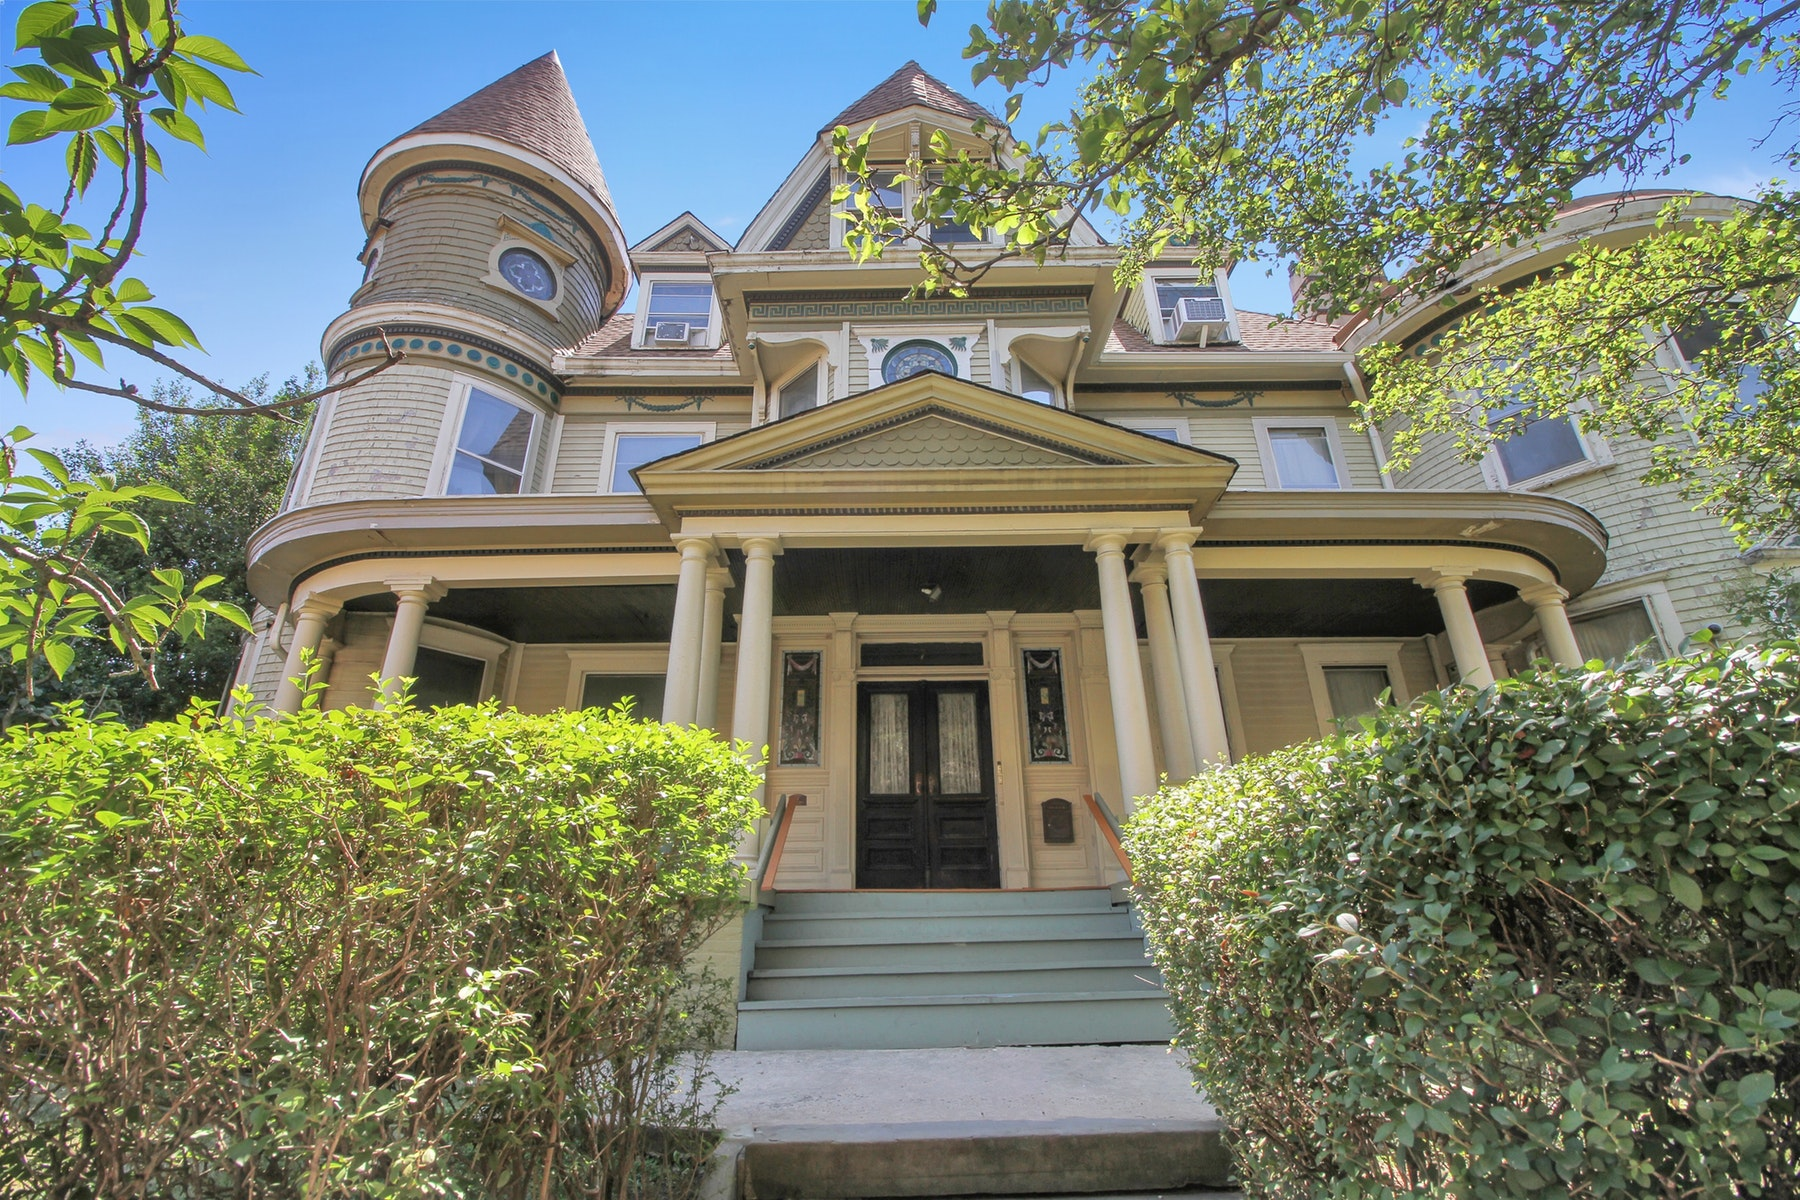 Multi-Family Home for Sale at Award Winning Victorian 4 Family Home 7 Kensington Ave Jersey City, New Jersey 07304 United States